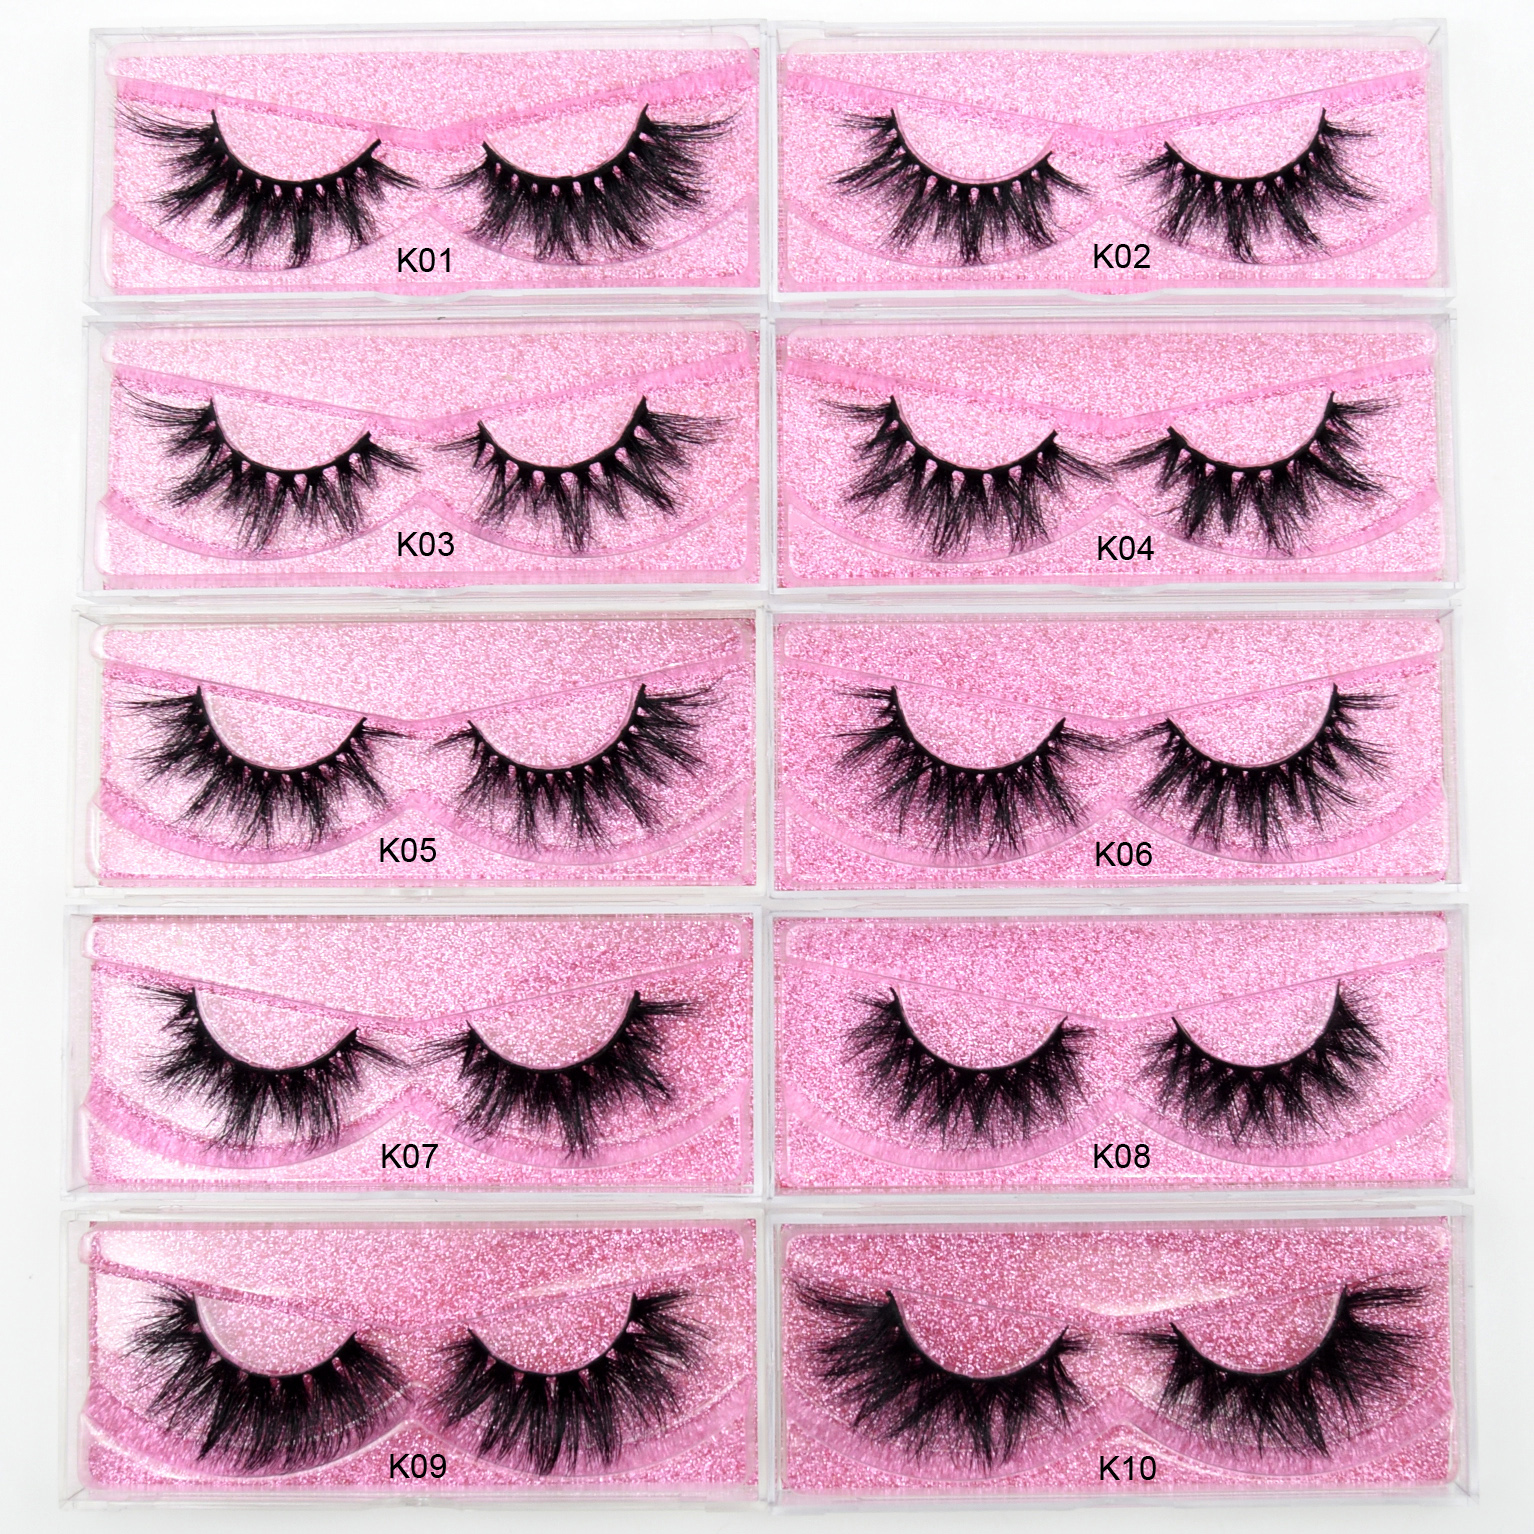 Image 5 - Free DHL 100pairs Visofree Eyelashes 3D Mink Lashes Handmade Mink Dramatic Lashes 68styles cruelty free reusable lashes wholsale-in False Eyelashes from Beauty & Health